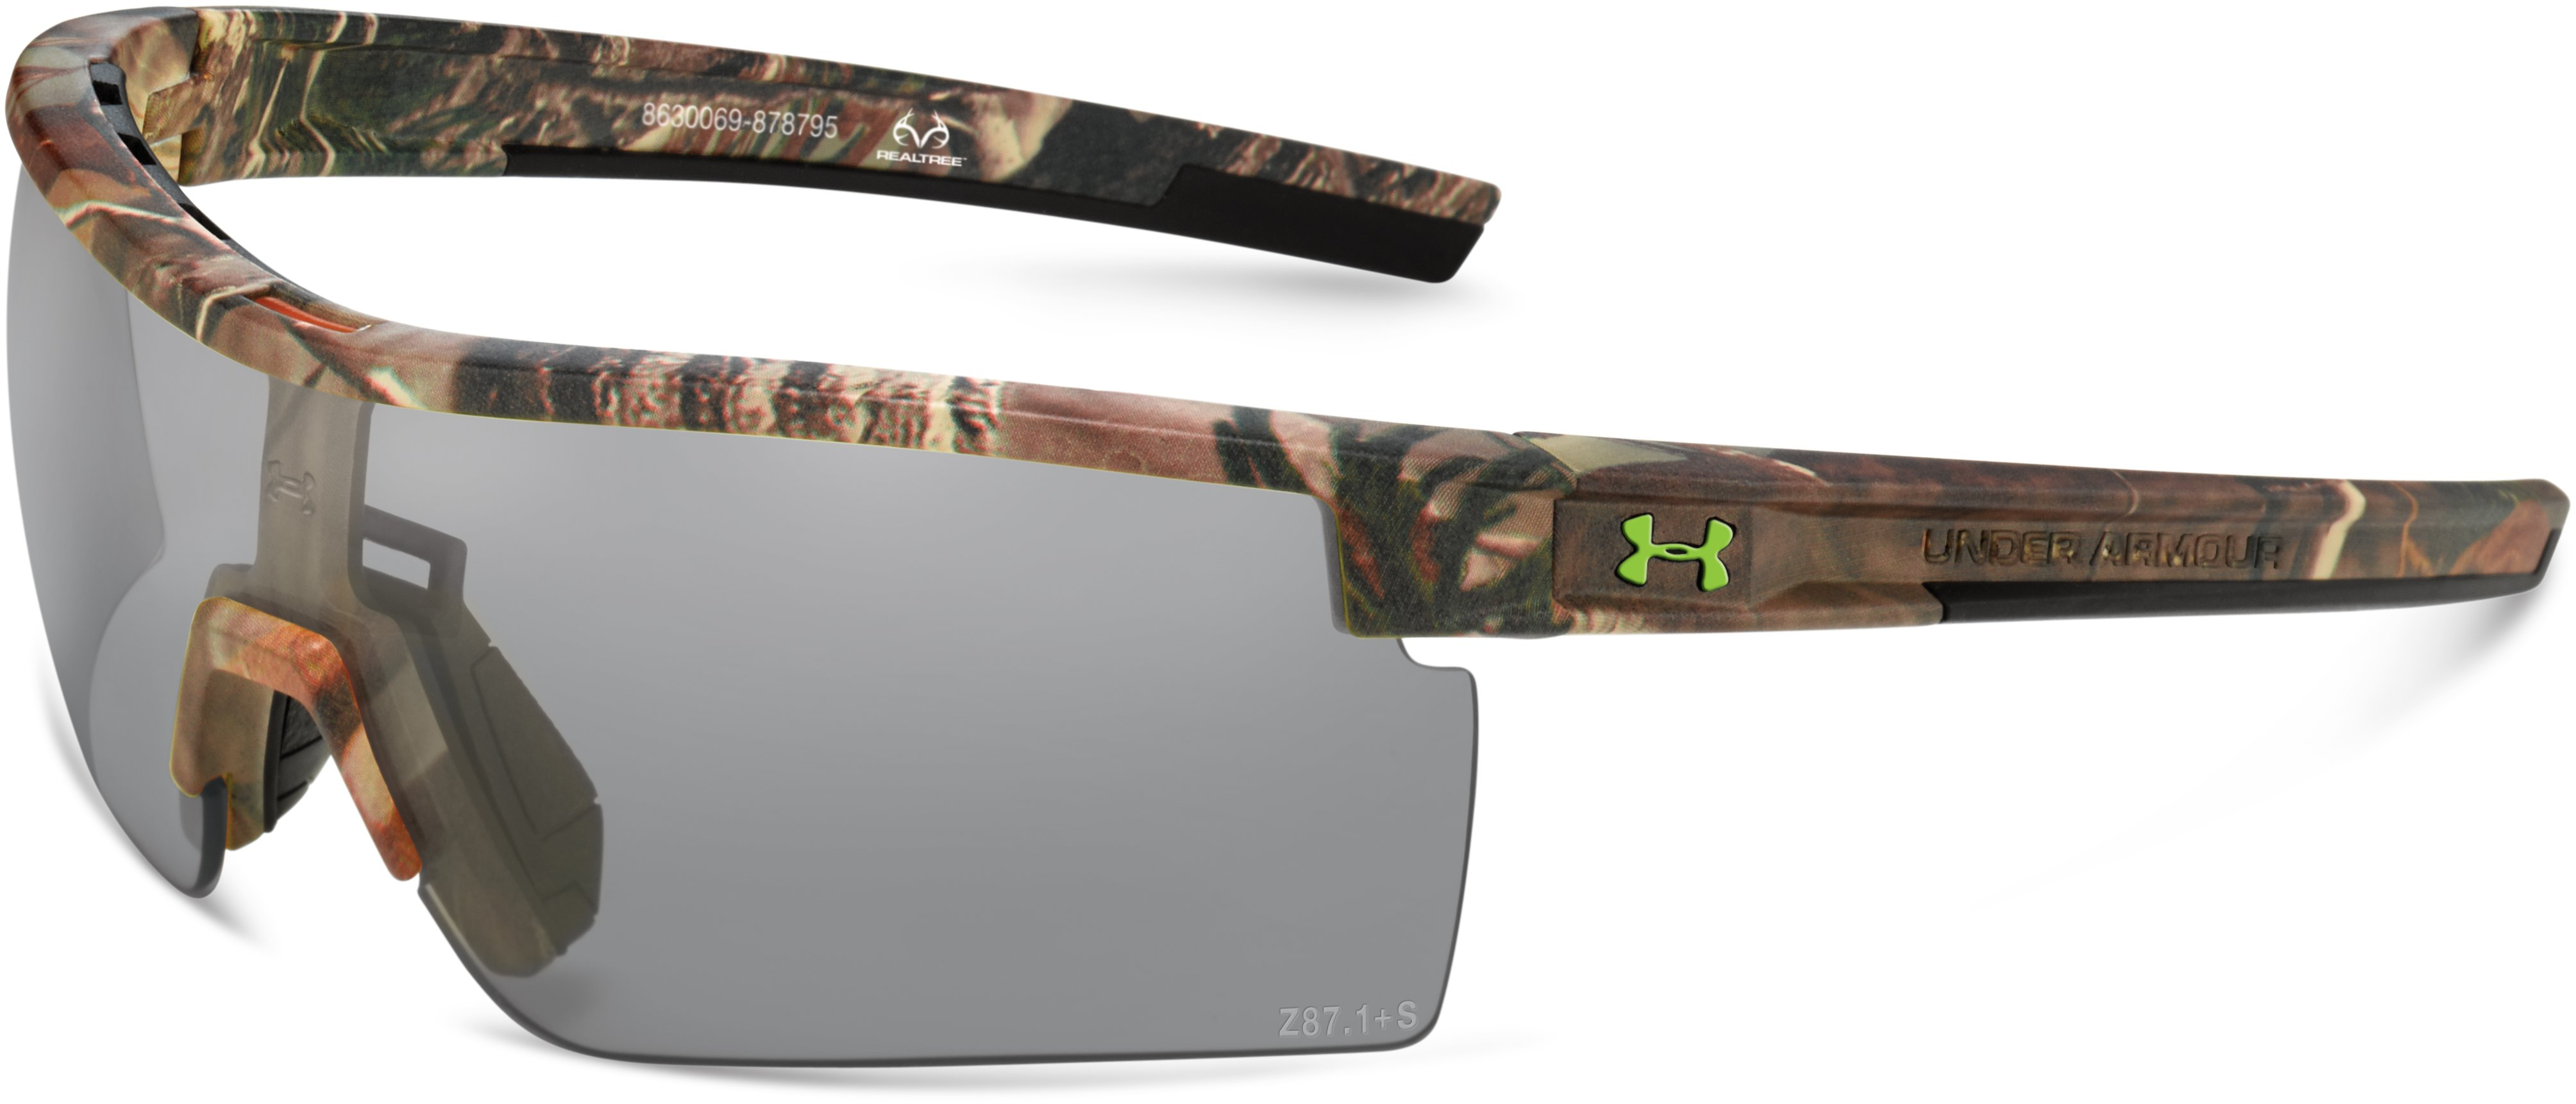 UA Freedom Interchange Camo Tactical Sunglasses, Realtree AP